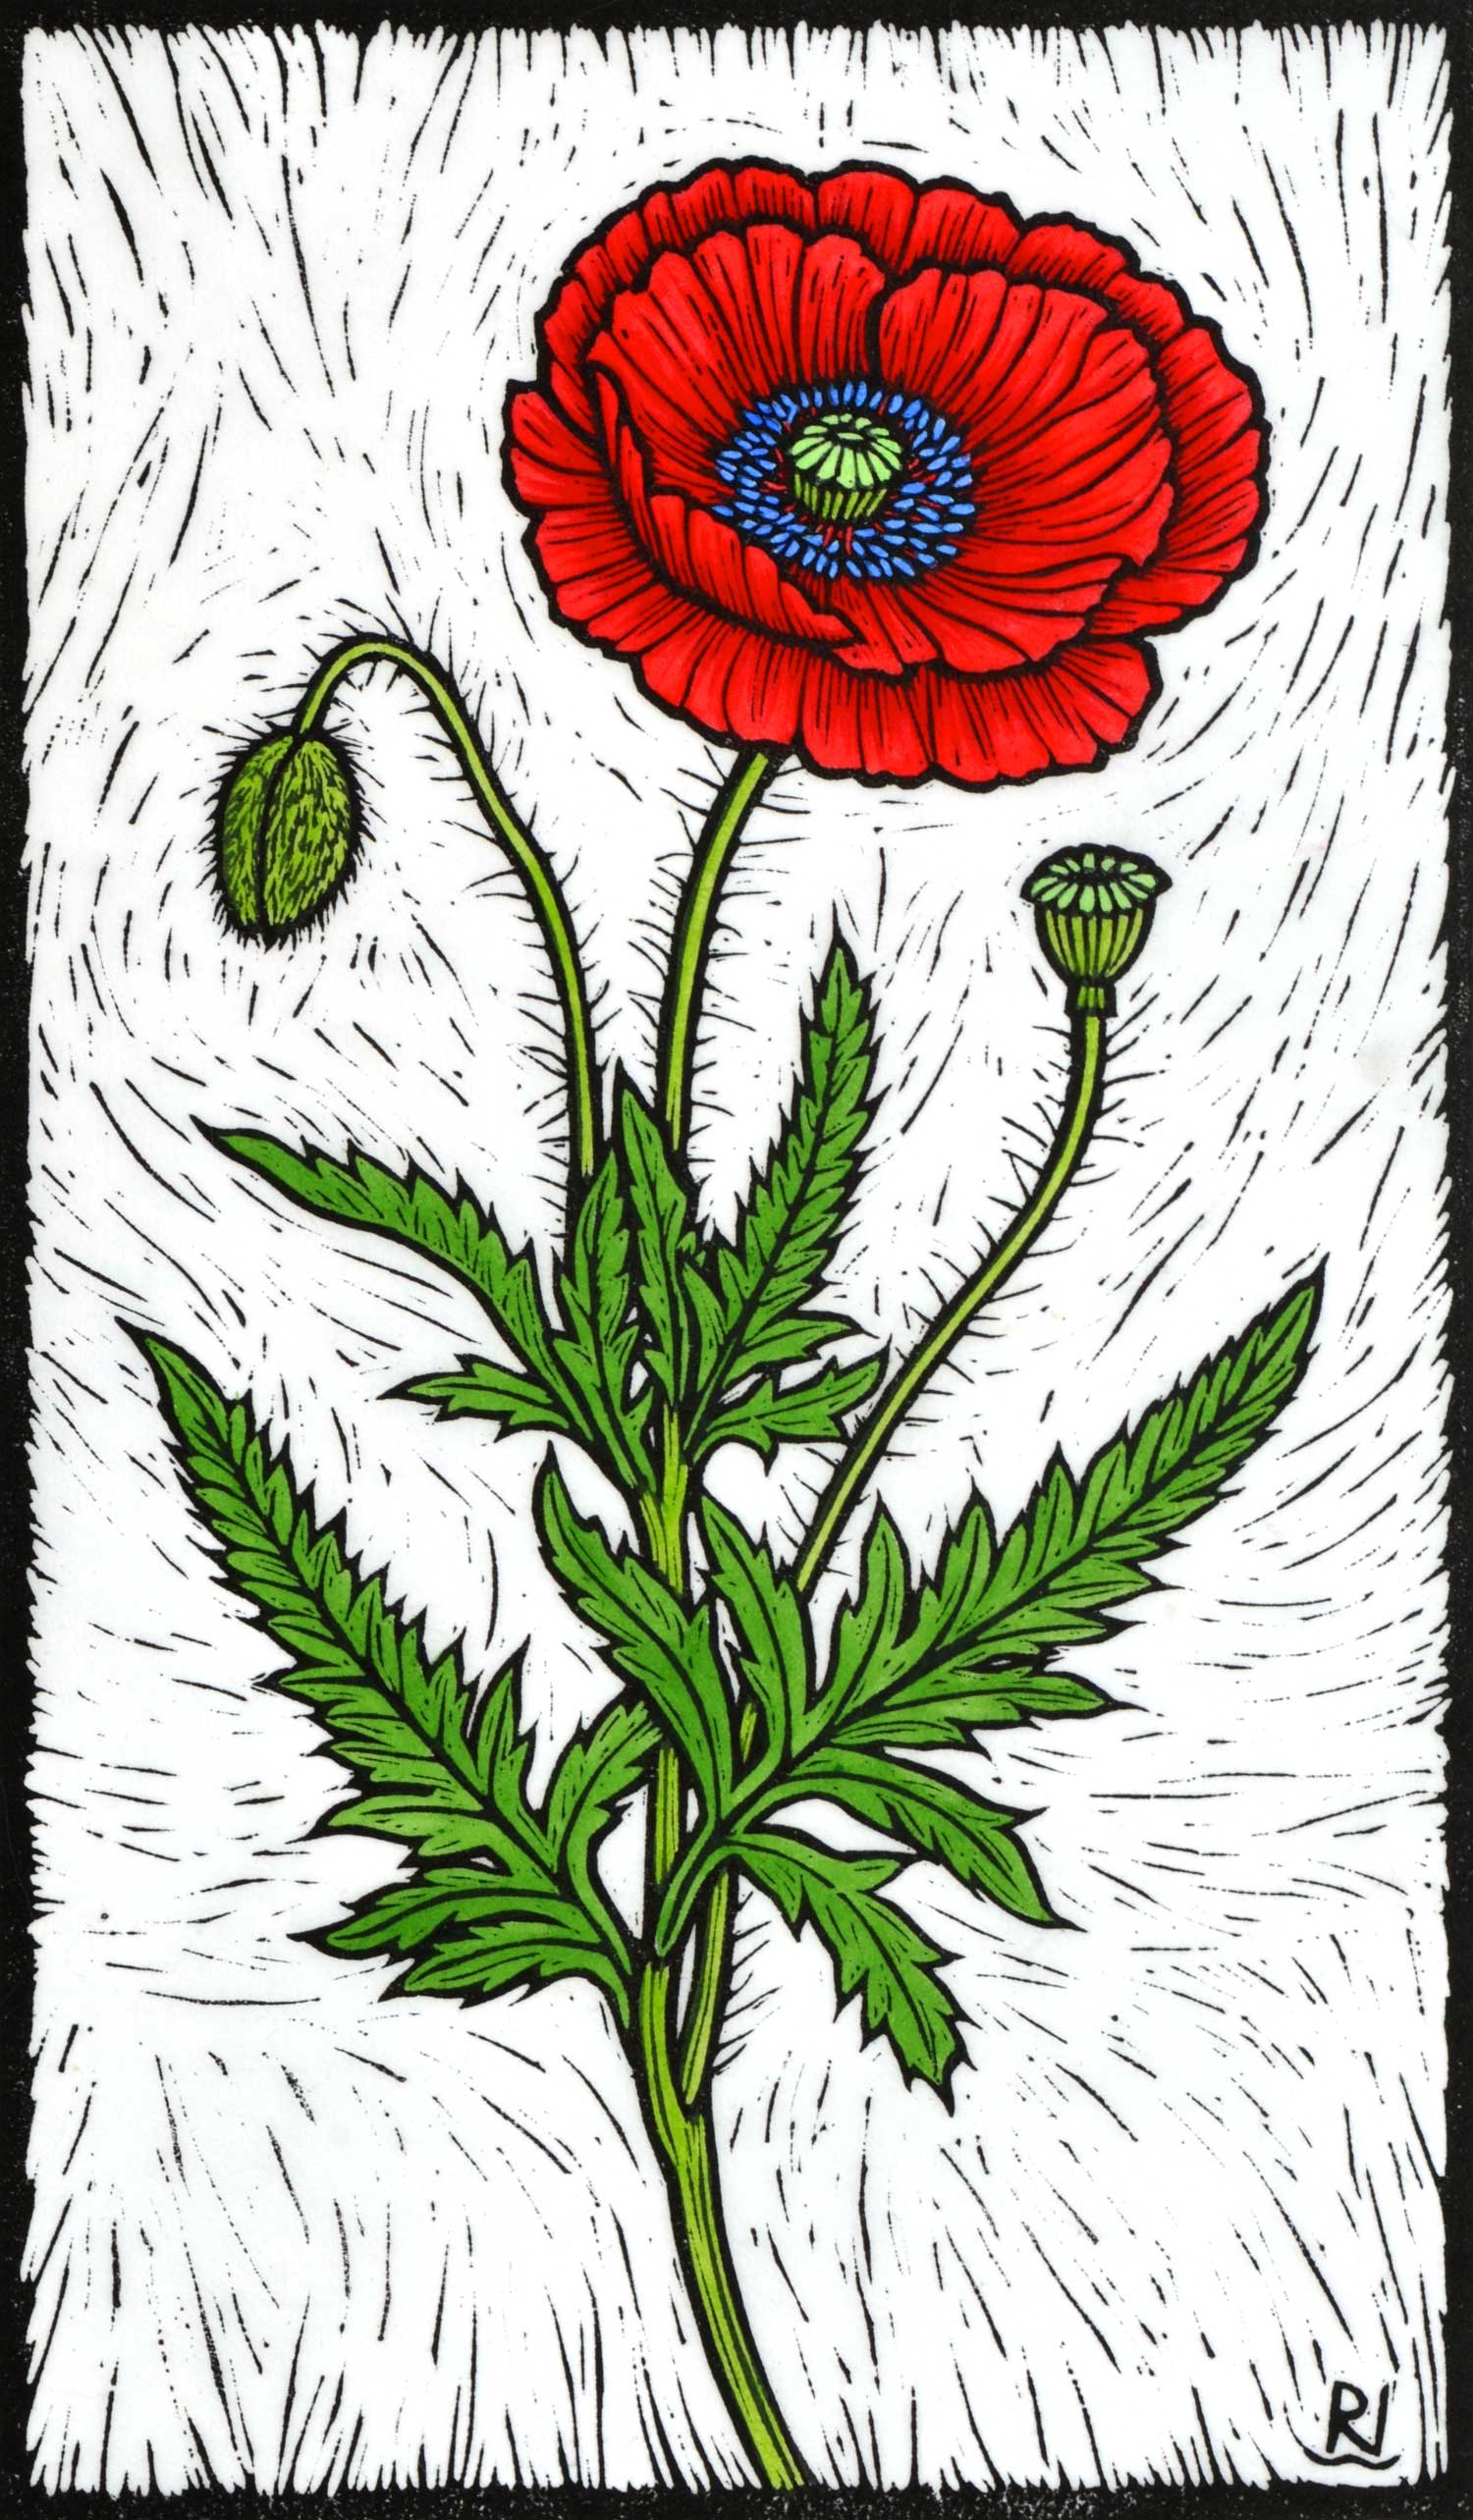 Flanders Poppy  33 x 19 cm, Edition of 50  Hand-Coloured Linocut on Handmade Japanese paper $400